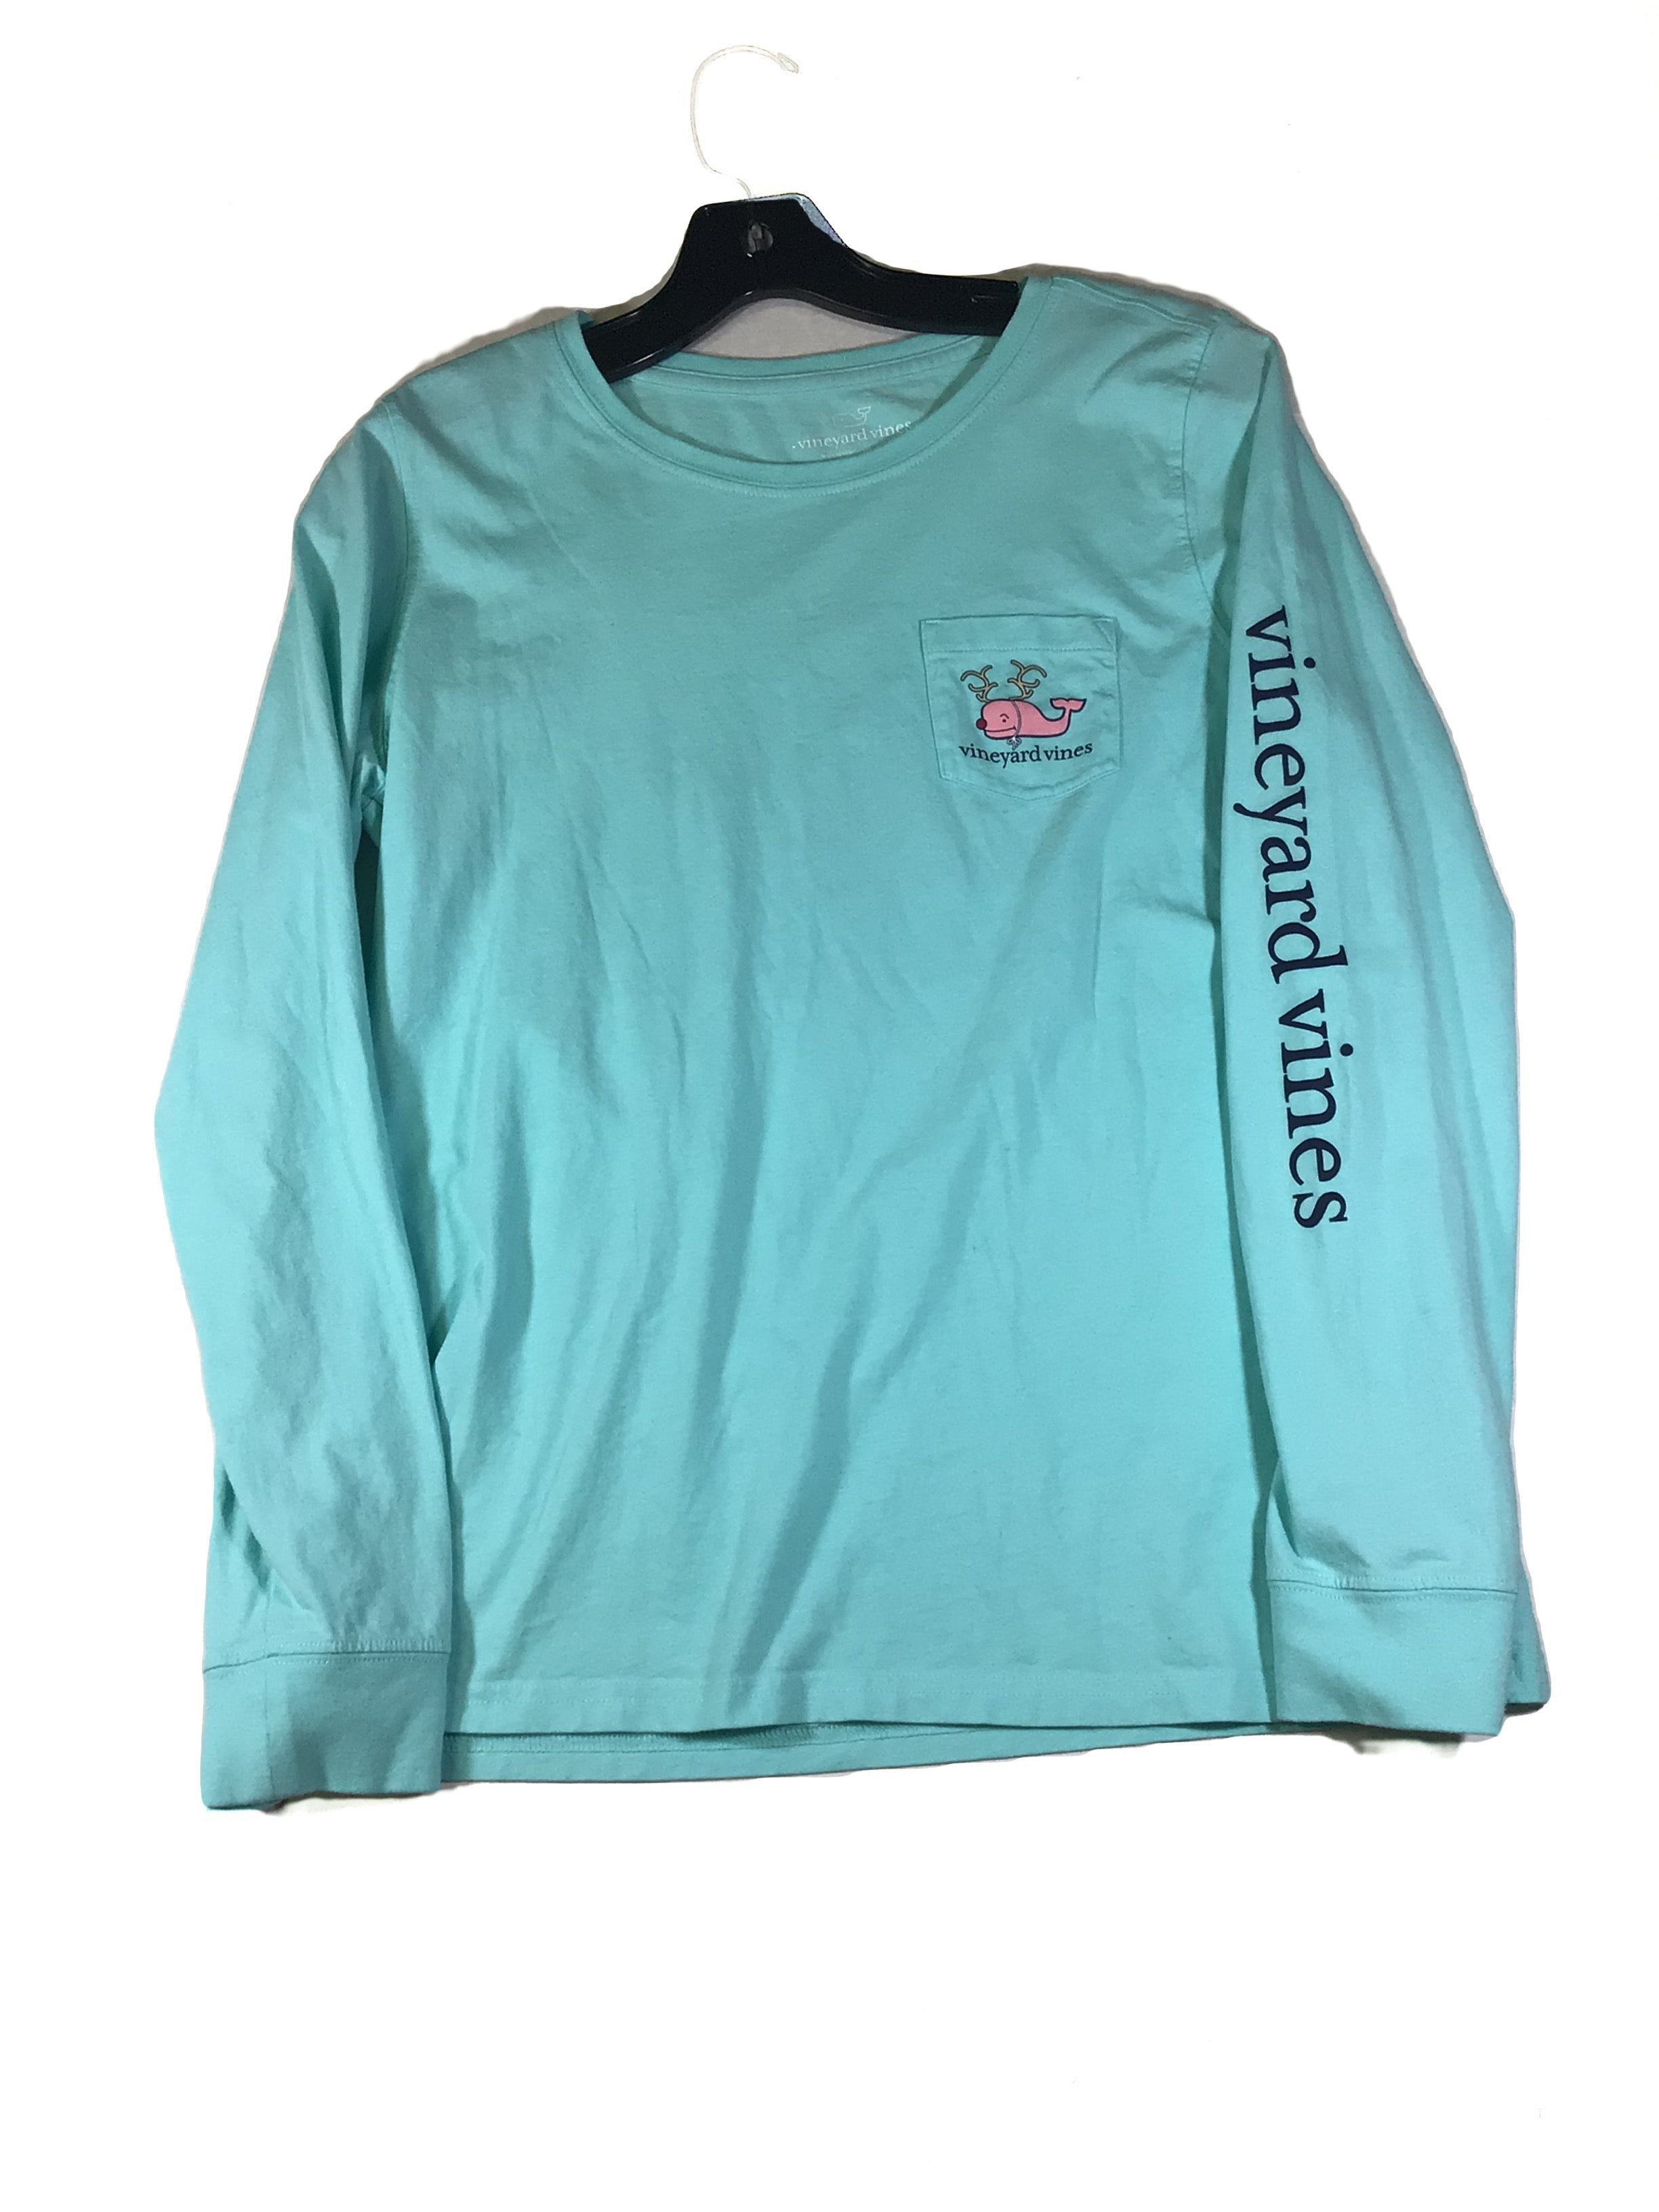 Primary Photo - BRAND: VINEYARD VINES <BR>STYLE: TOP LONG SLEEVE <BR>COLOR: AQUA <BR>SIZE: S <BR>SKU: 213-213143-8347